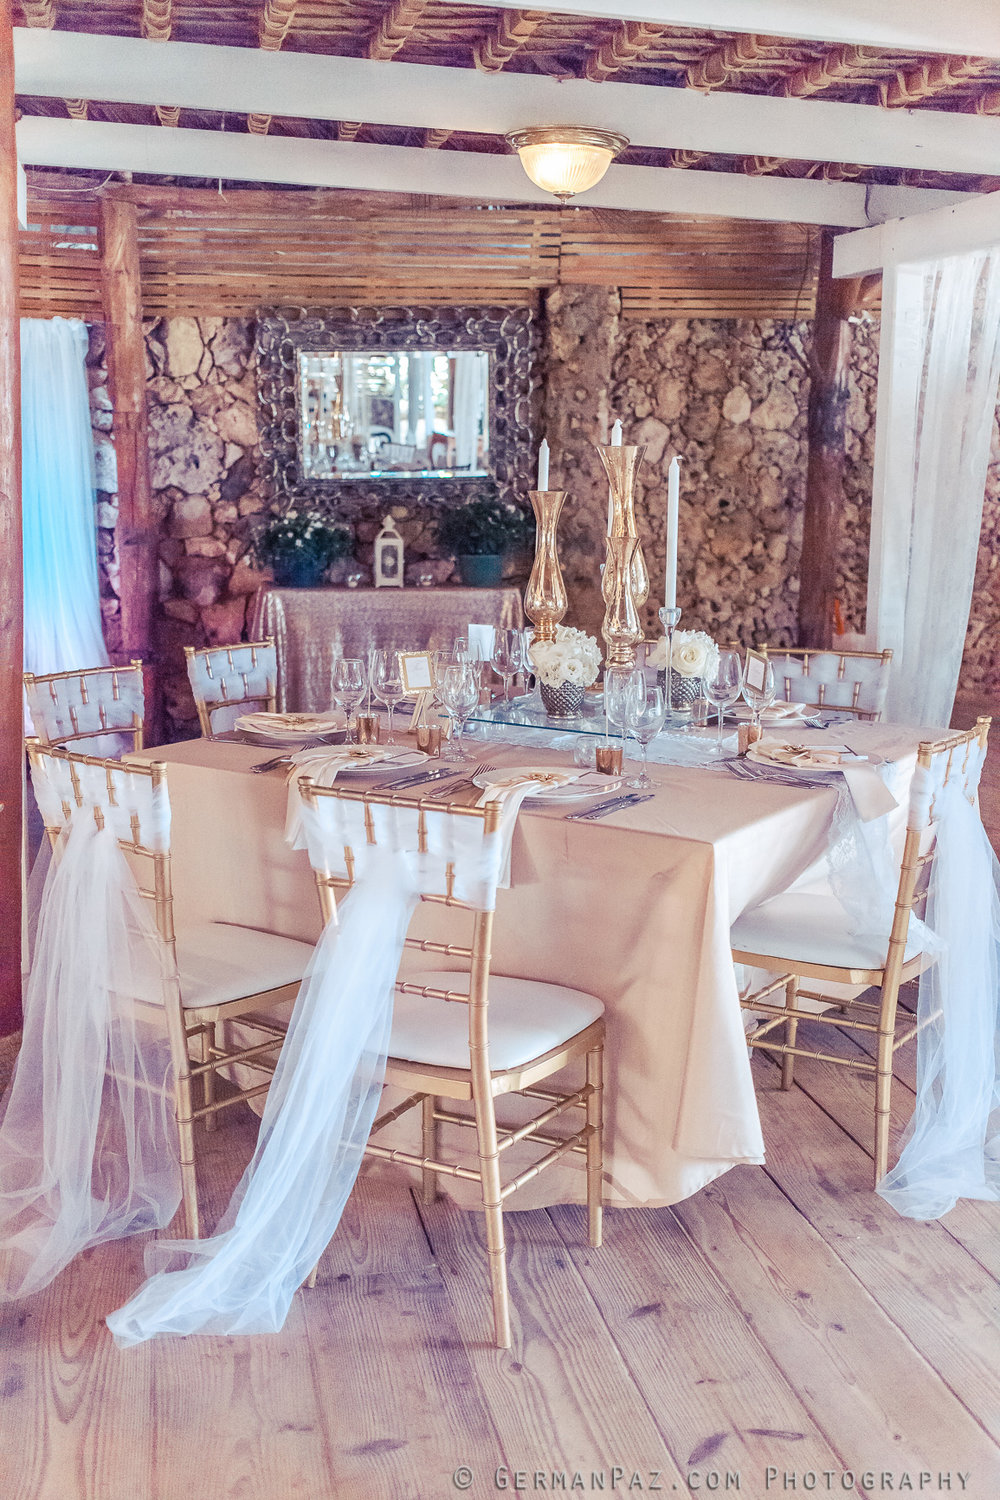 Brandi & Eddie, July 2, 2015 Decor by Mayte Mari and Natalia Roldan Venue: Huracan Cafe Photo by  German Paz